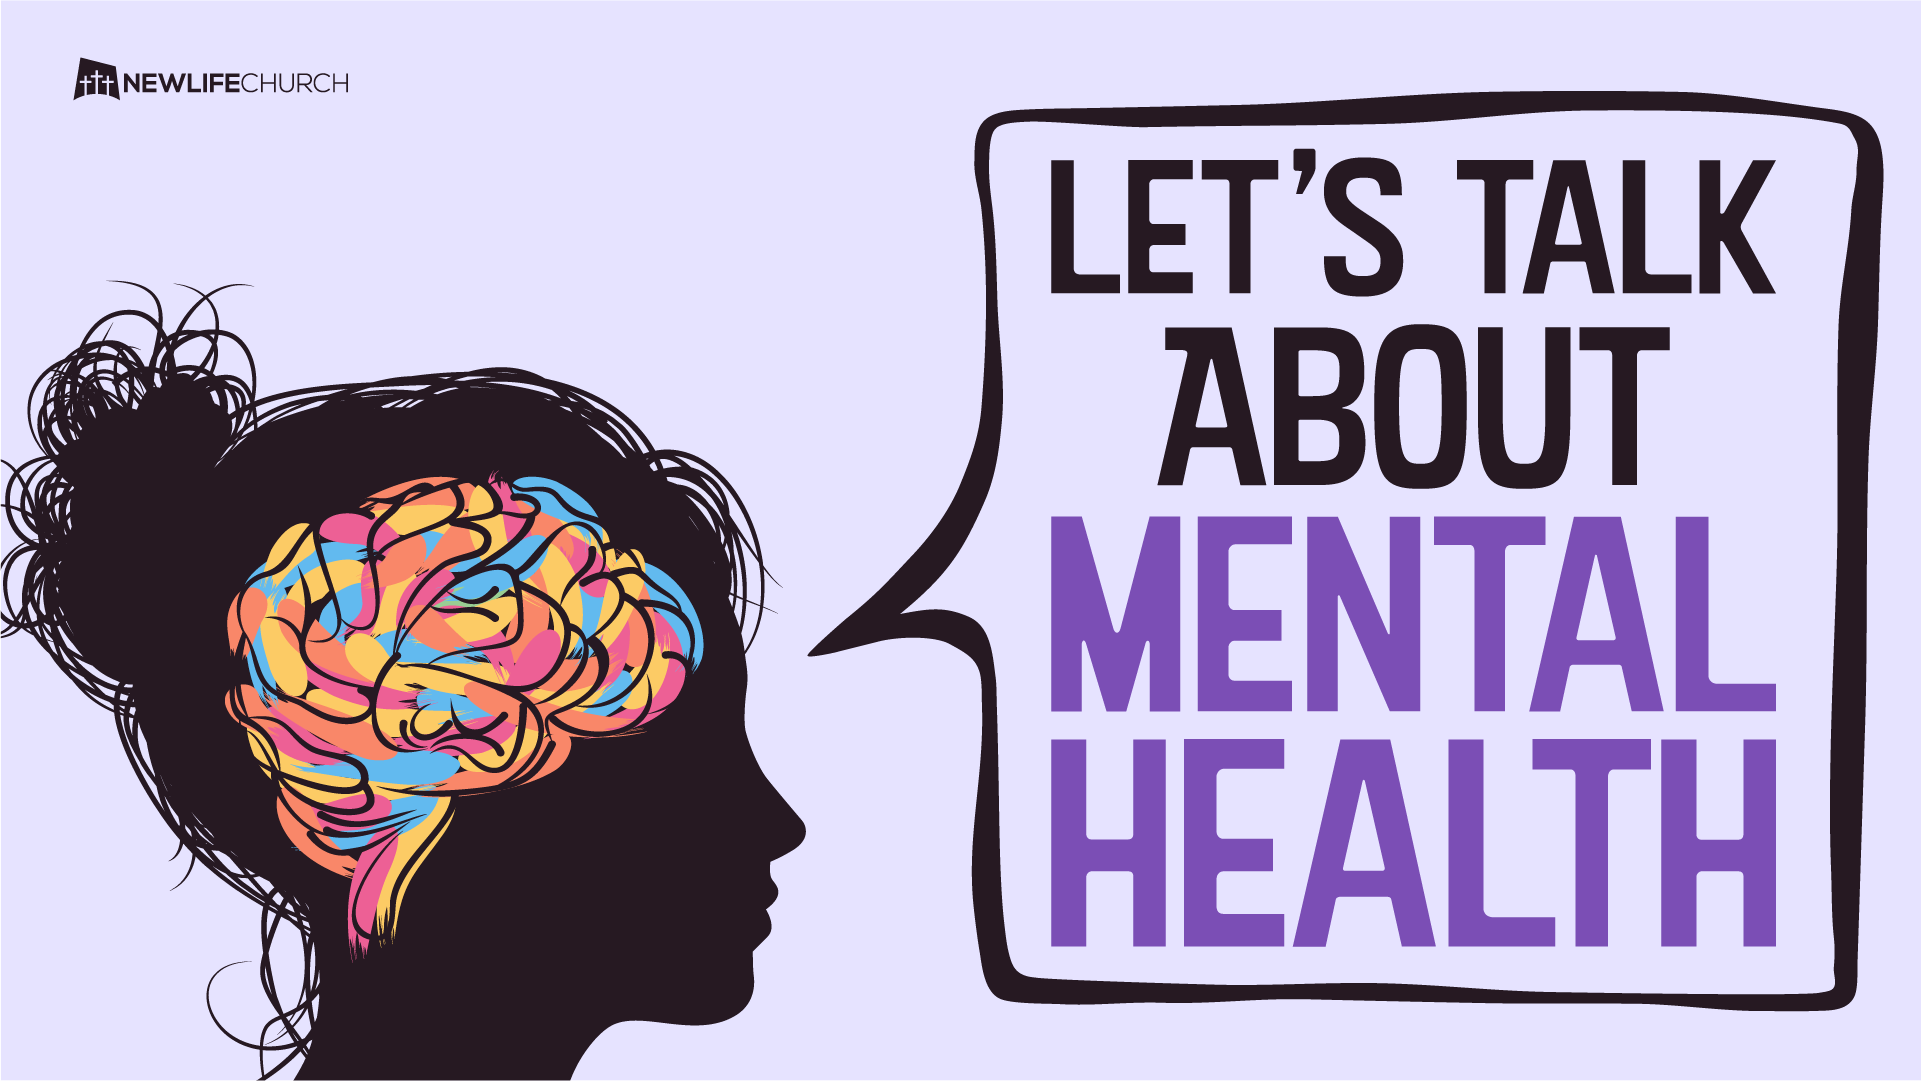 Let's Talk About Mental Health Image